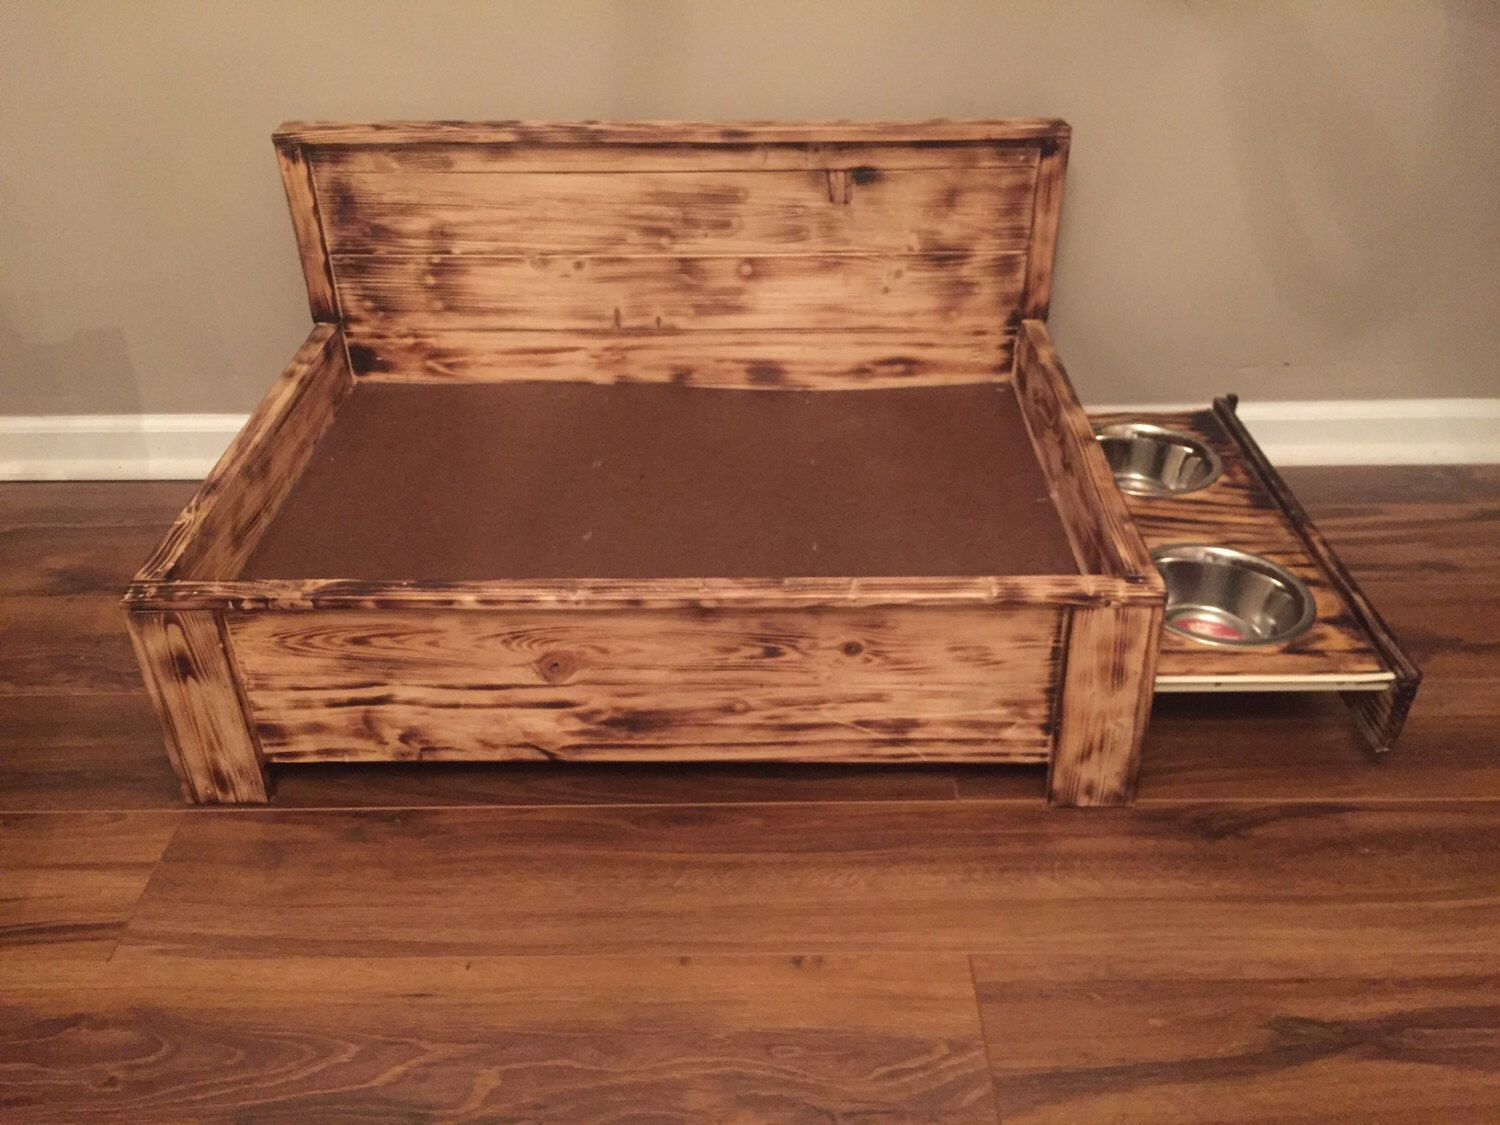 Rustic Wood Dog Bed With Pull Out Feeding Station Raised Built